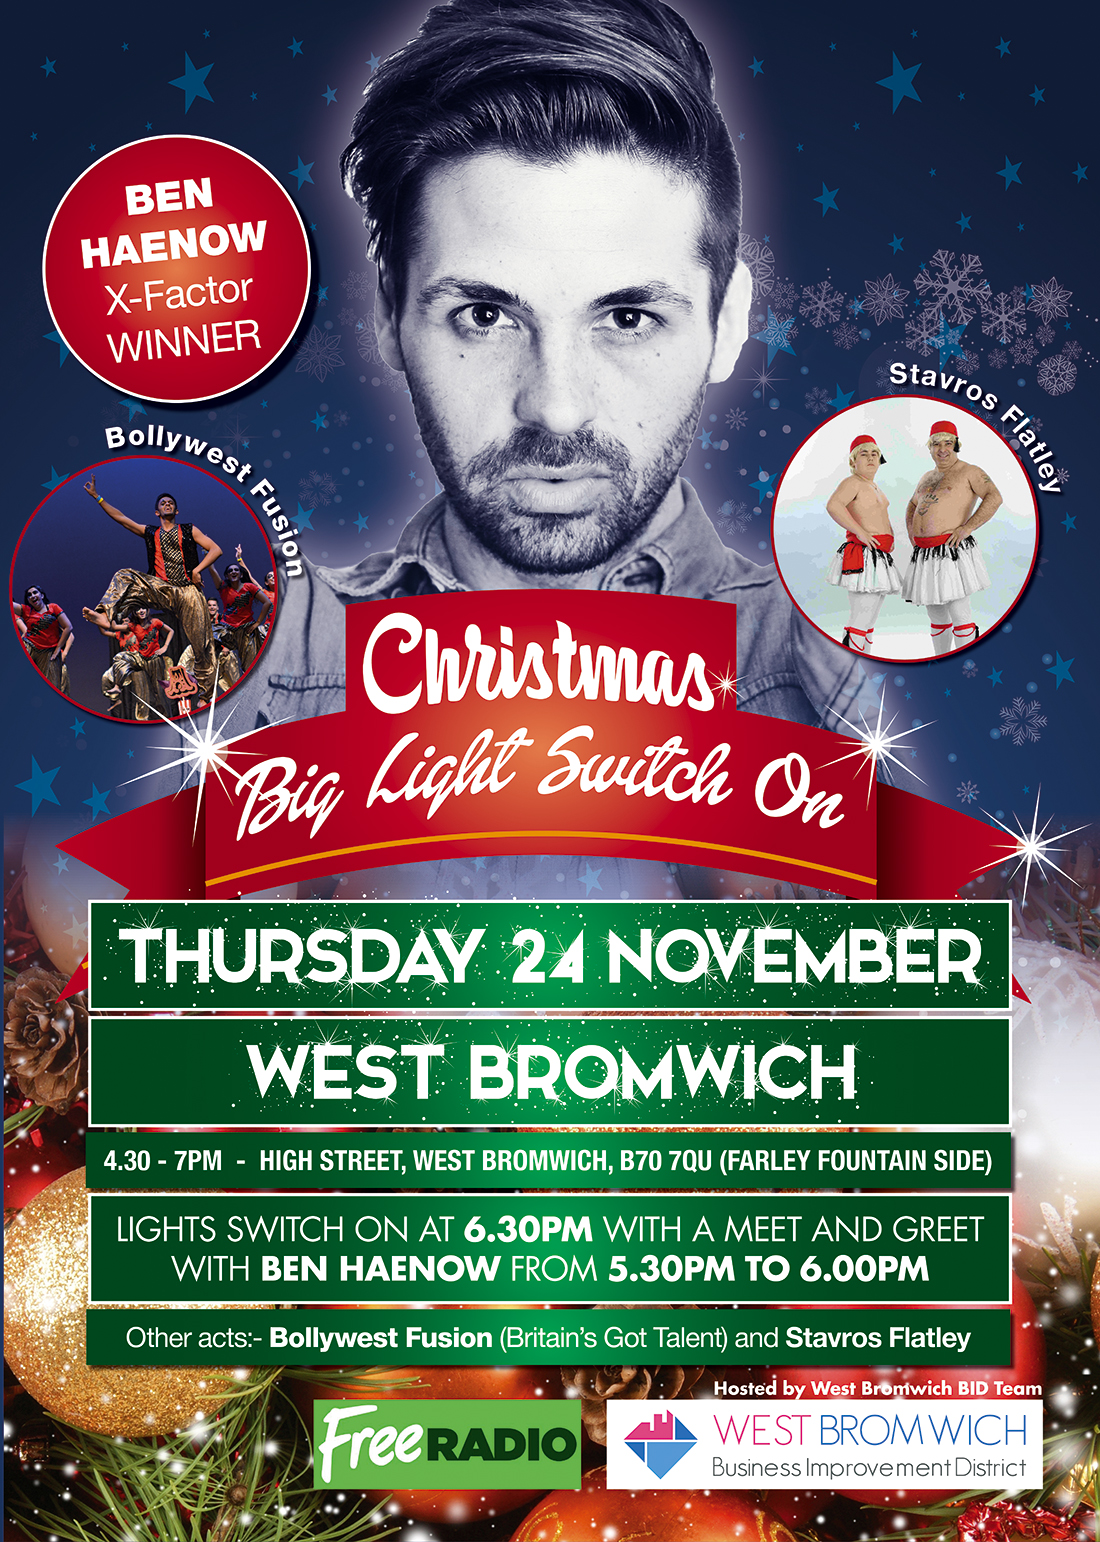 Meet & Greet Ben Haenow